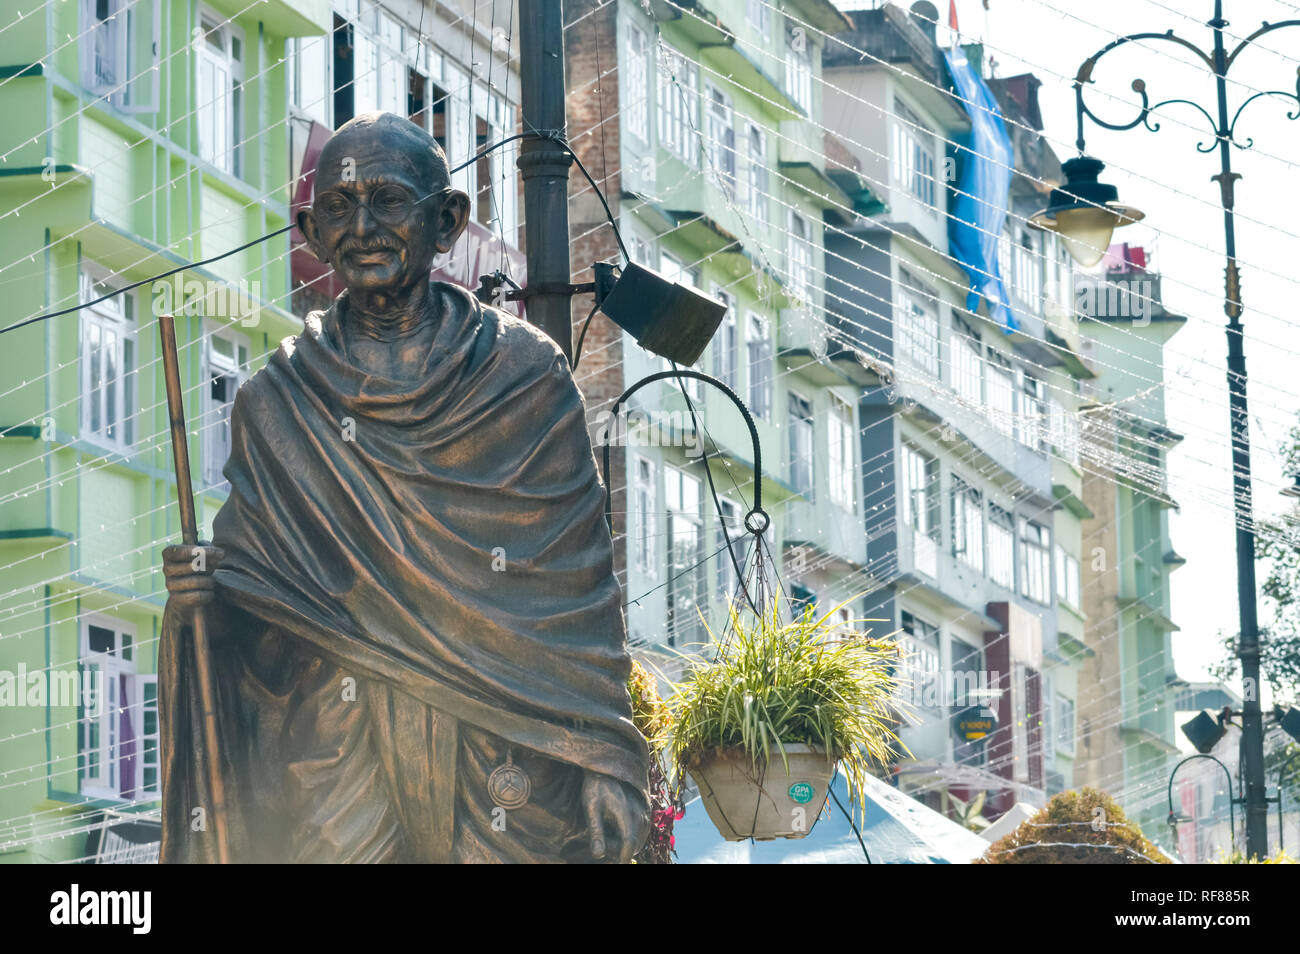 The statue of Mahatma Gandhi in MG Marg near mall road, Gangtok, Sikkim, India one of most visited in the city for tourist attractions. - Stock Image